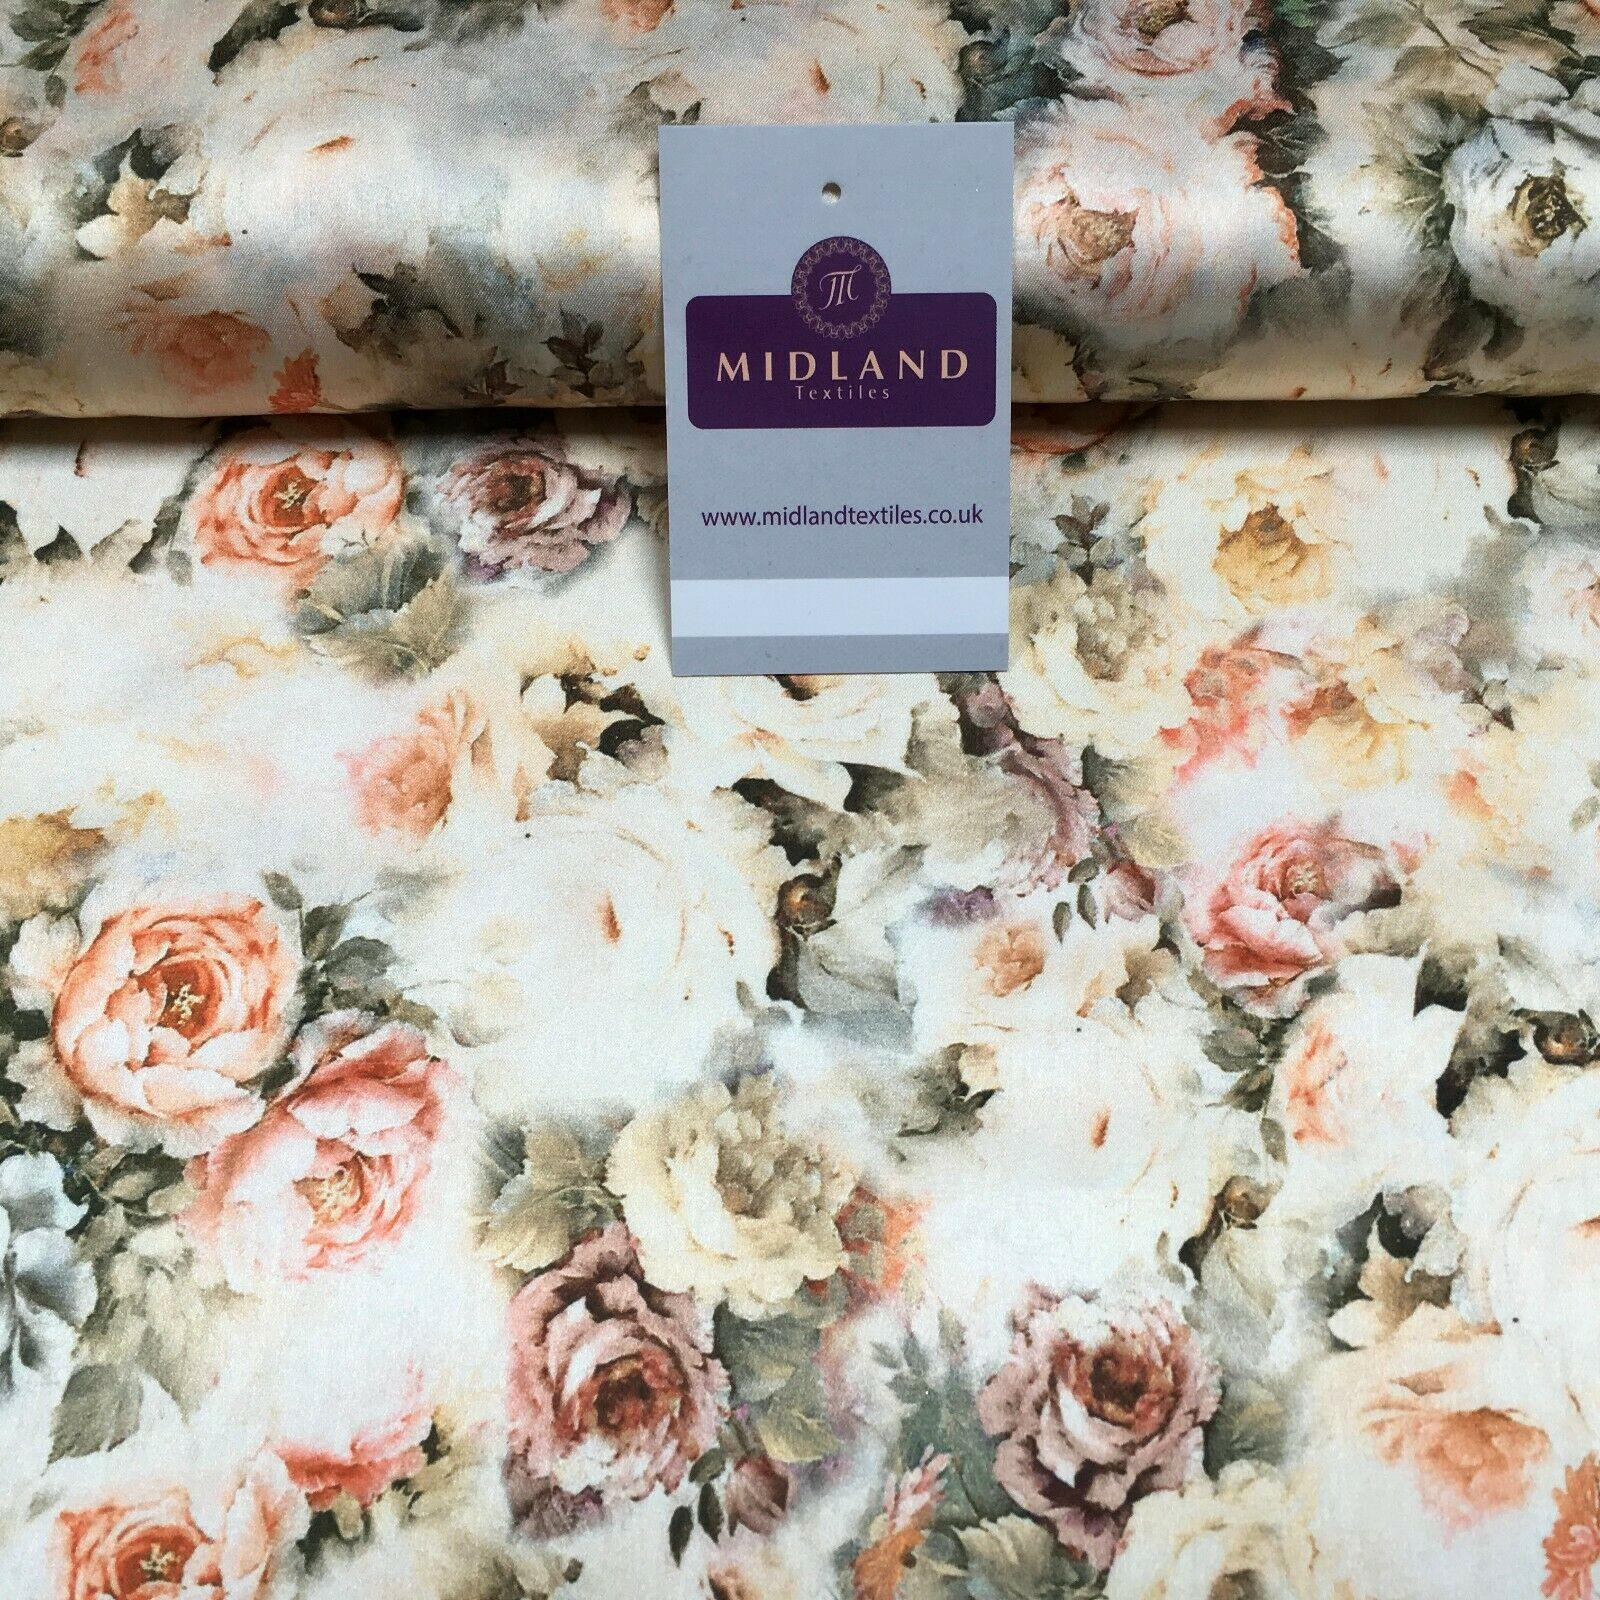 Floral Vintage Soft Digital Printed Satin Dress Fabric 110 cm Wide MA1142 Mtex